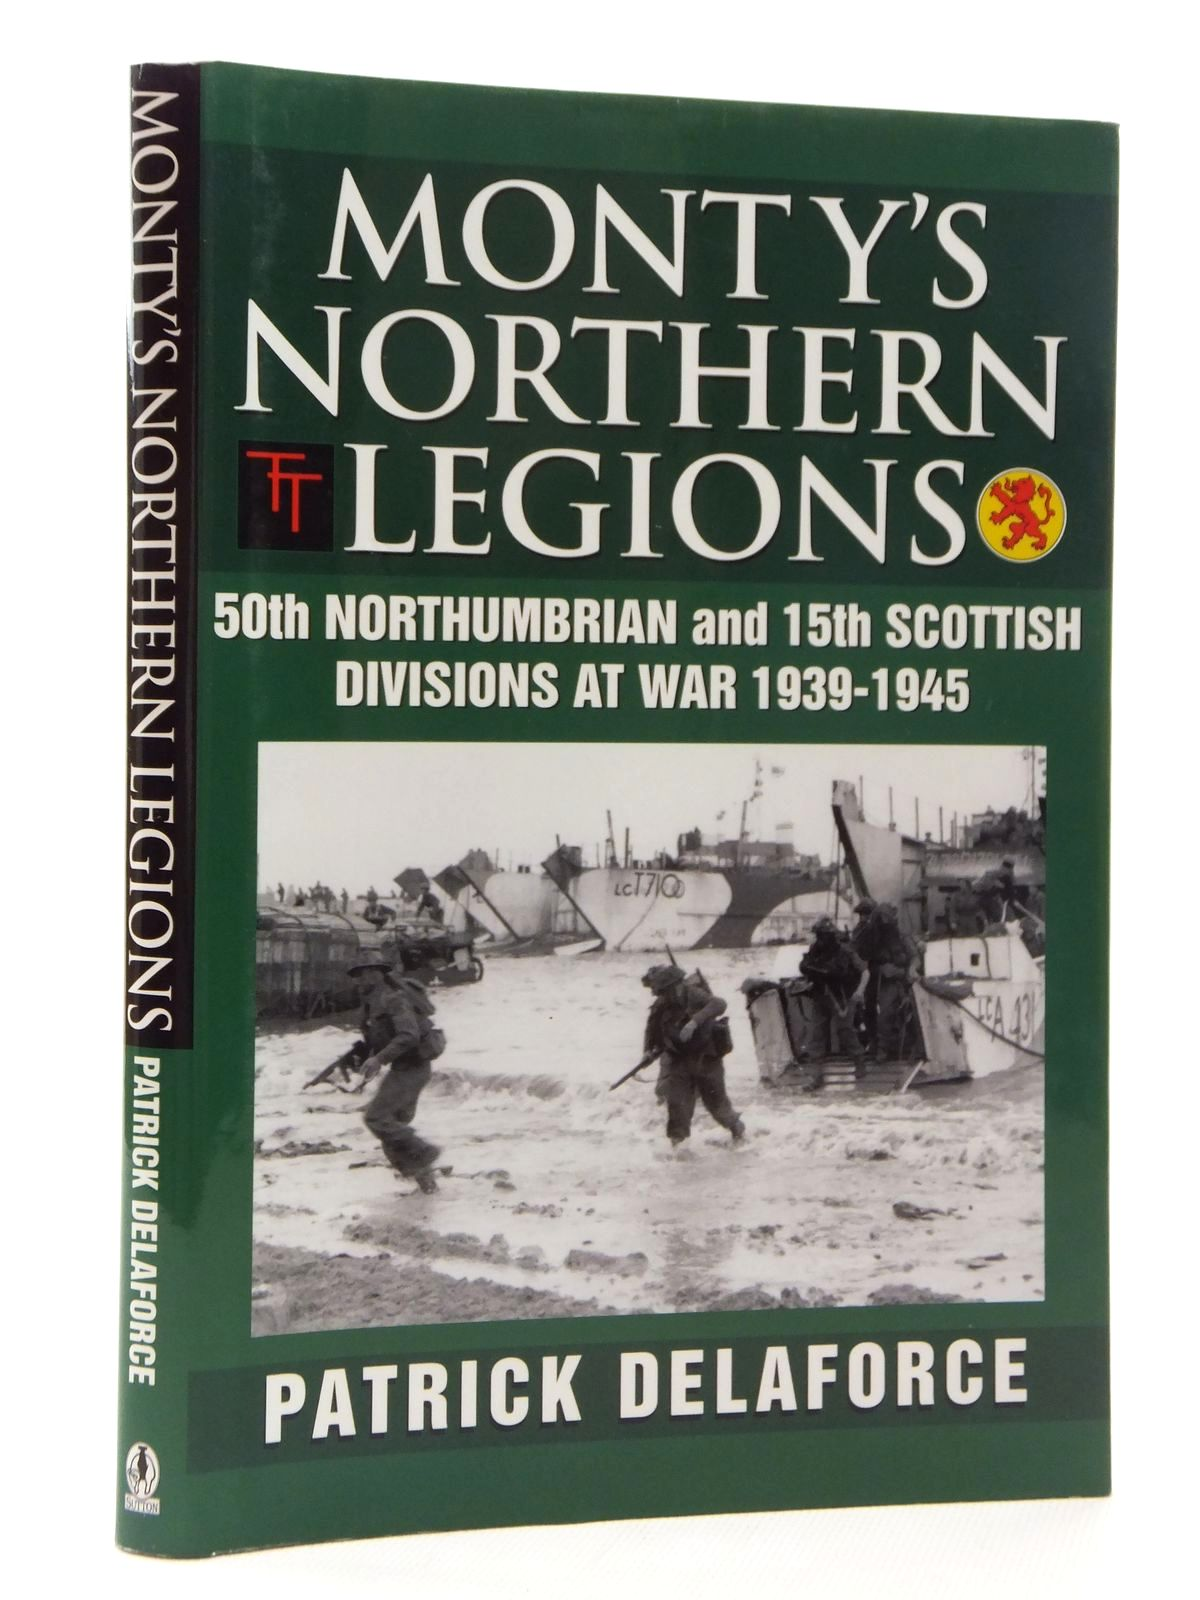 Photo of MONTY'S NORTHERN LEGIONS: 50TH NORTHUMBRIAN AND 15TH SCOTTISH DIVISIONS AT WAR 1939-1945 written by Delaforce, Patrick published by Sutton Publishing (STOCK CODE: 1815041)  for sale by Stella & Rose's Books